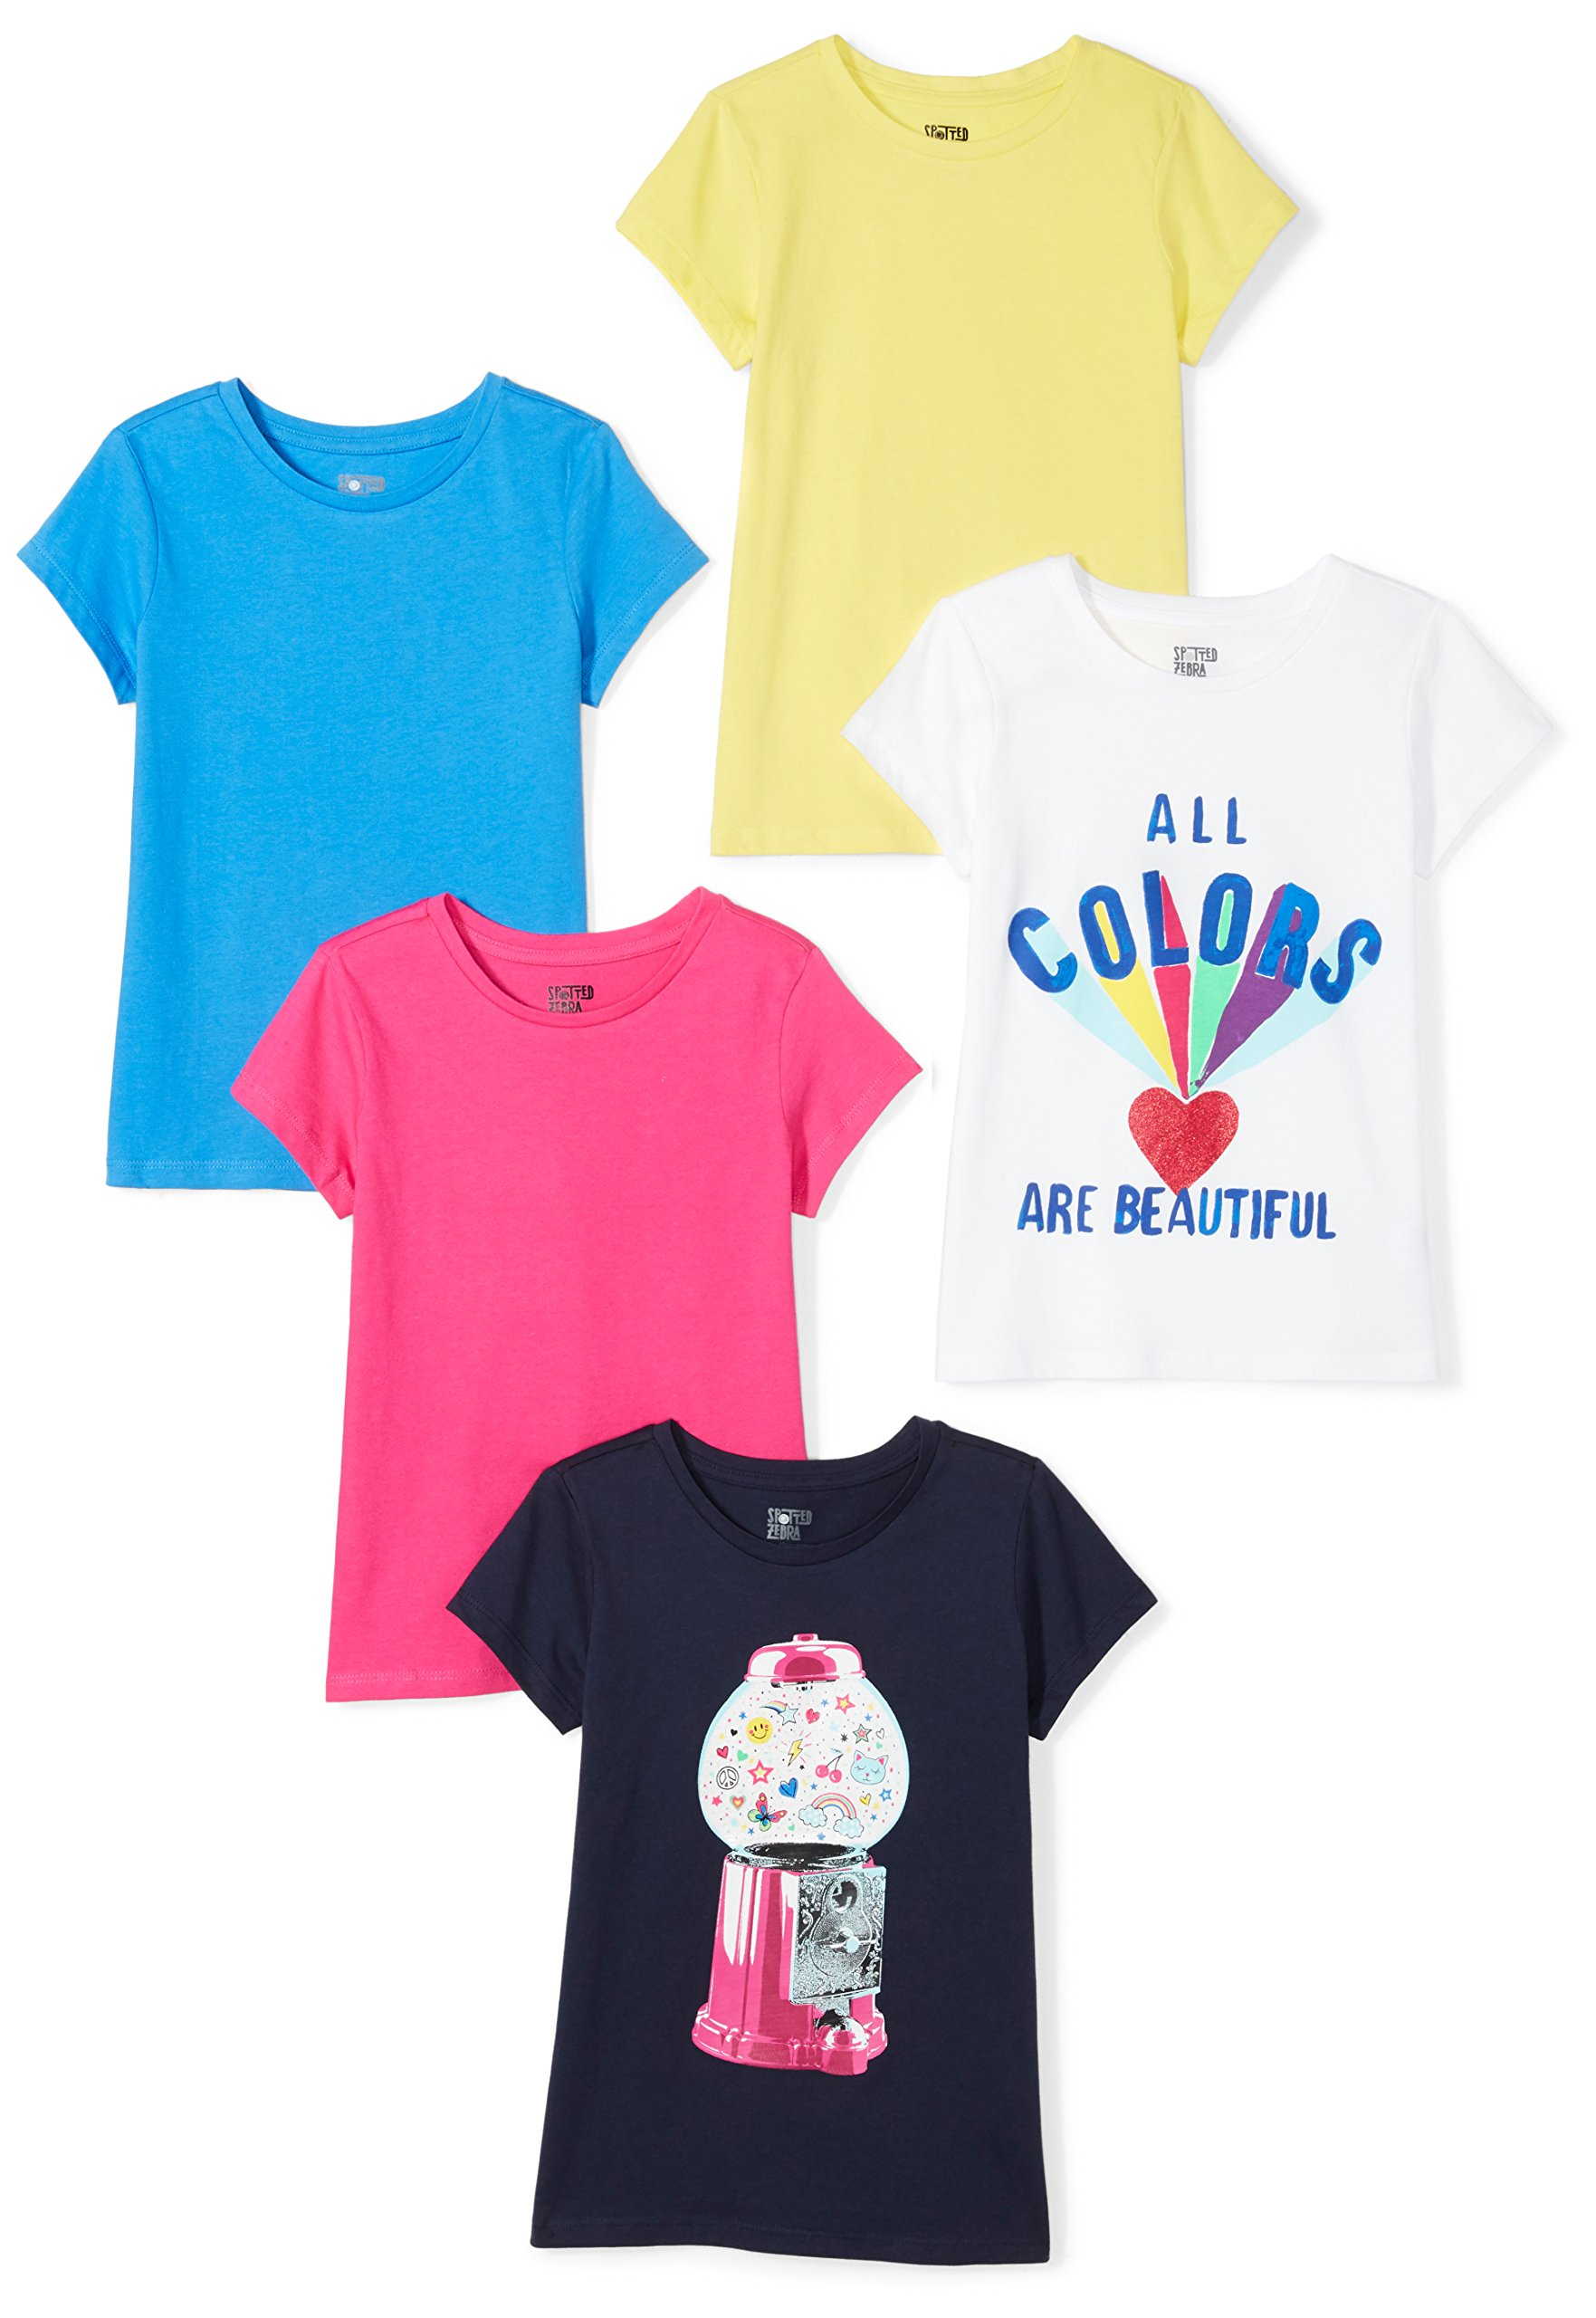 Spotted Zebra Toddler Girls' 5-Pack Short-Sleeve T-Shirts, Colors Are Beautiful, 3T